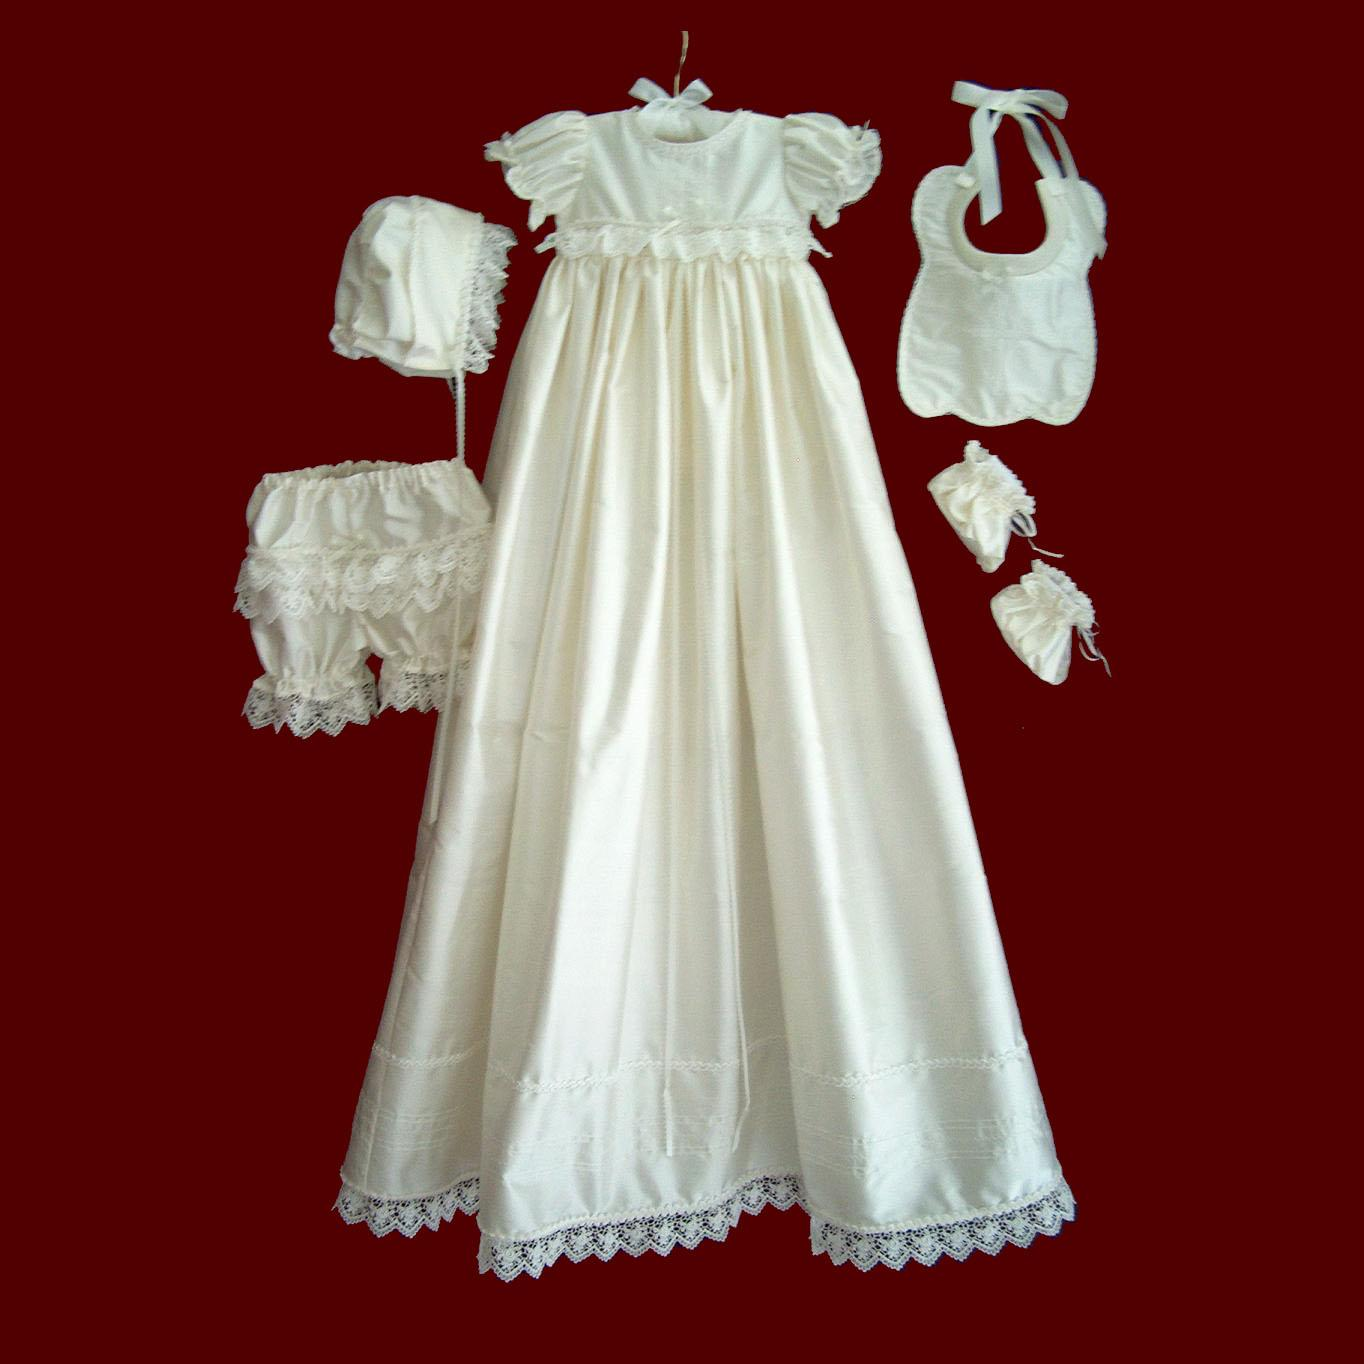 Cinderella Christening Gowns Girls: Ivory Silk Girls Christening Dress With Detachable Gown